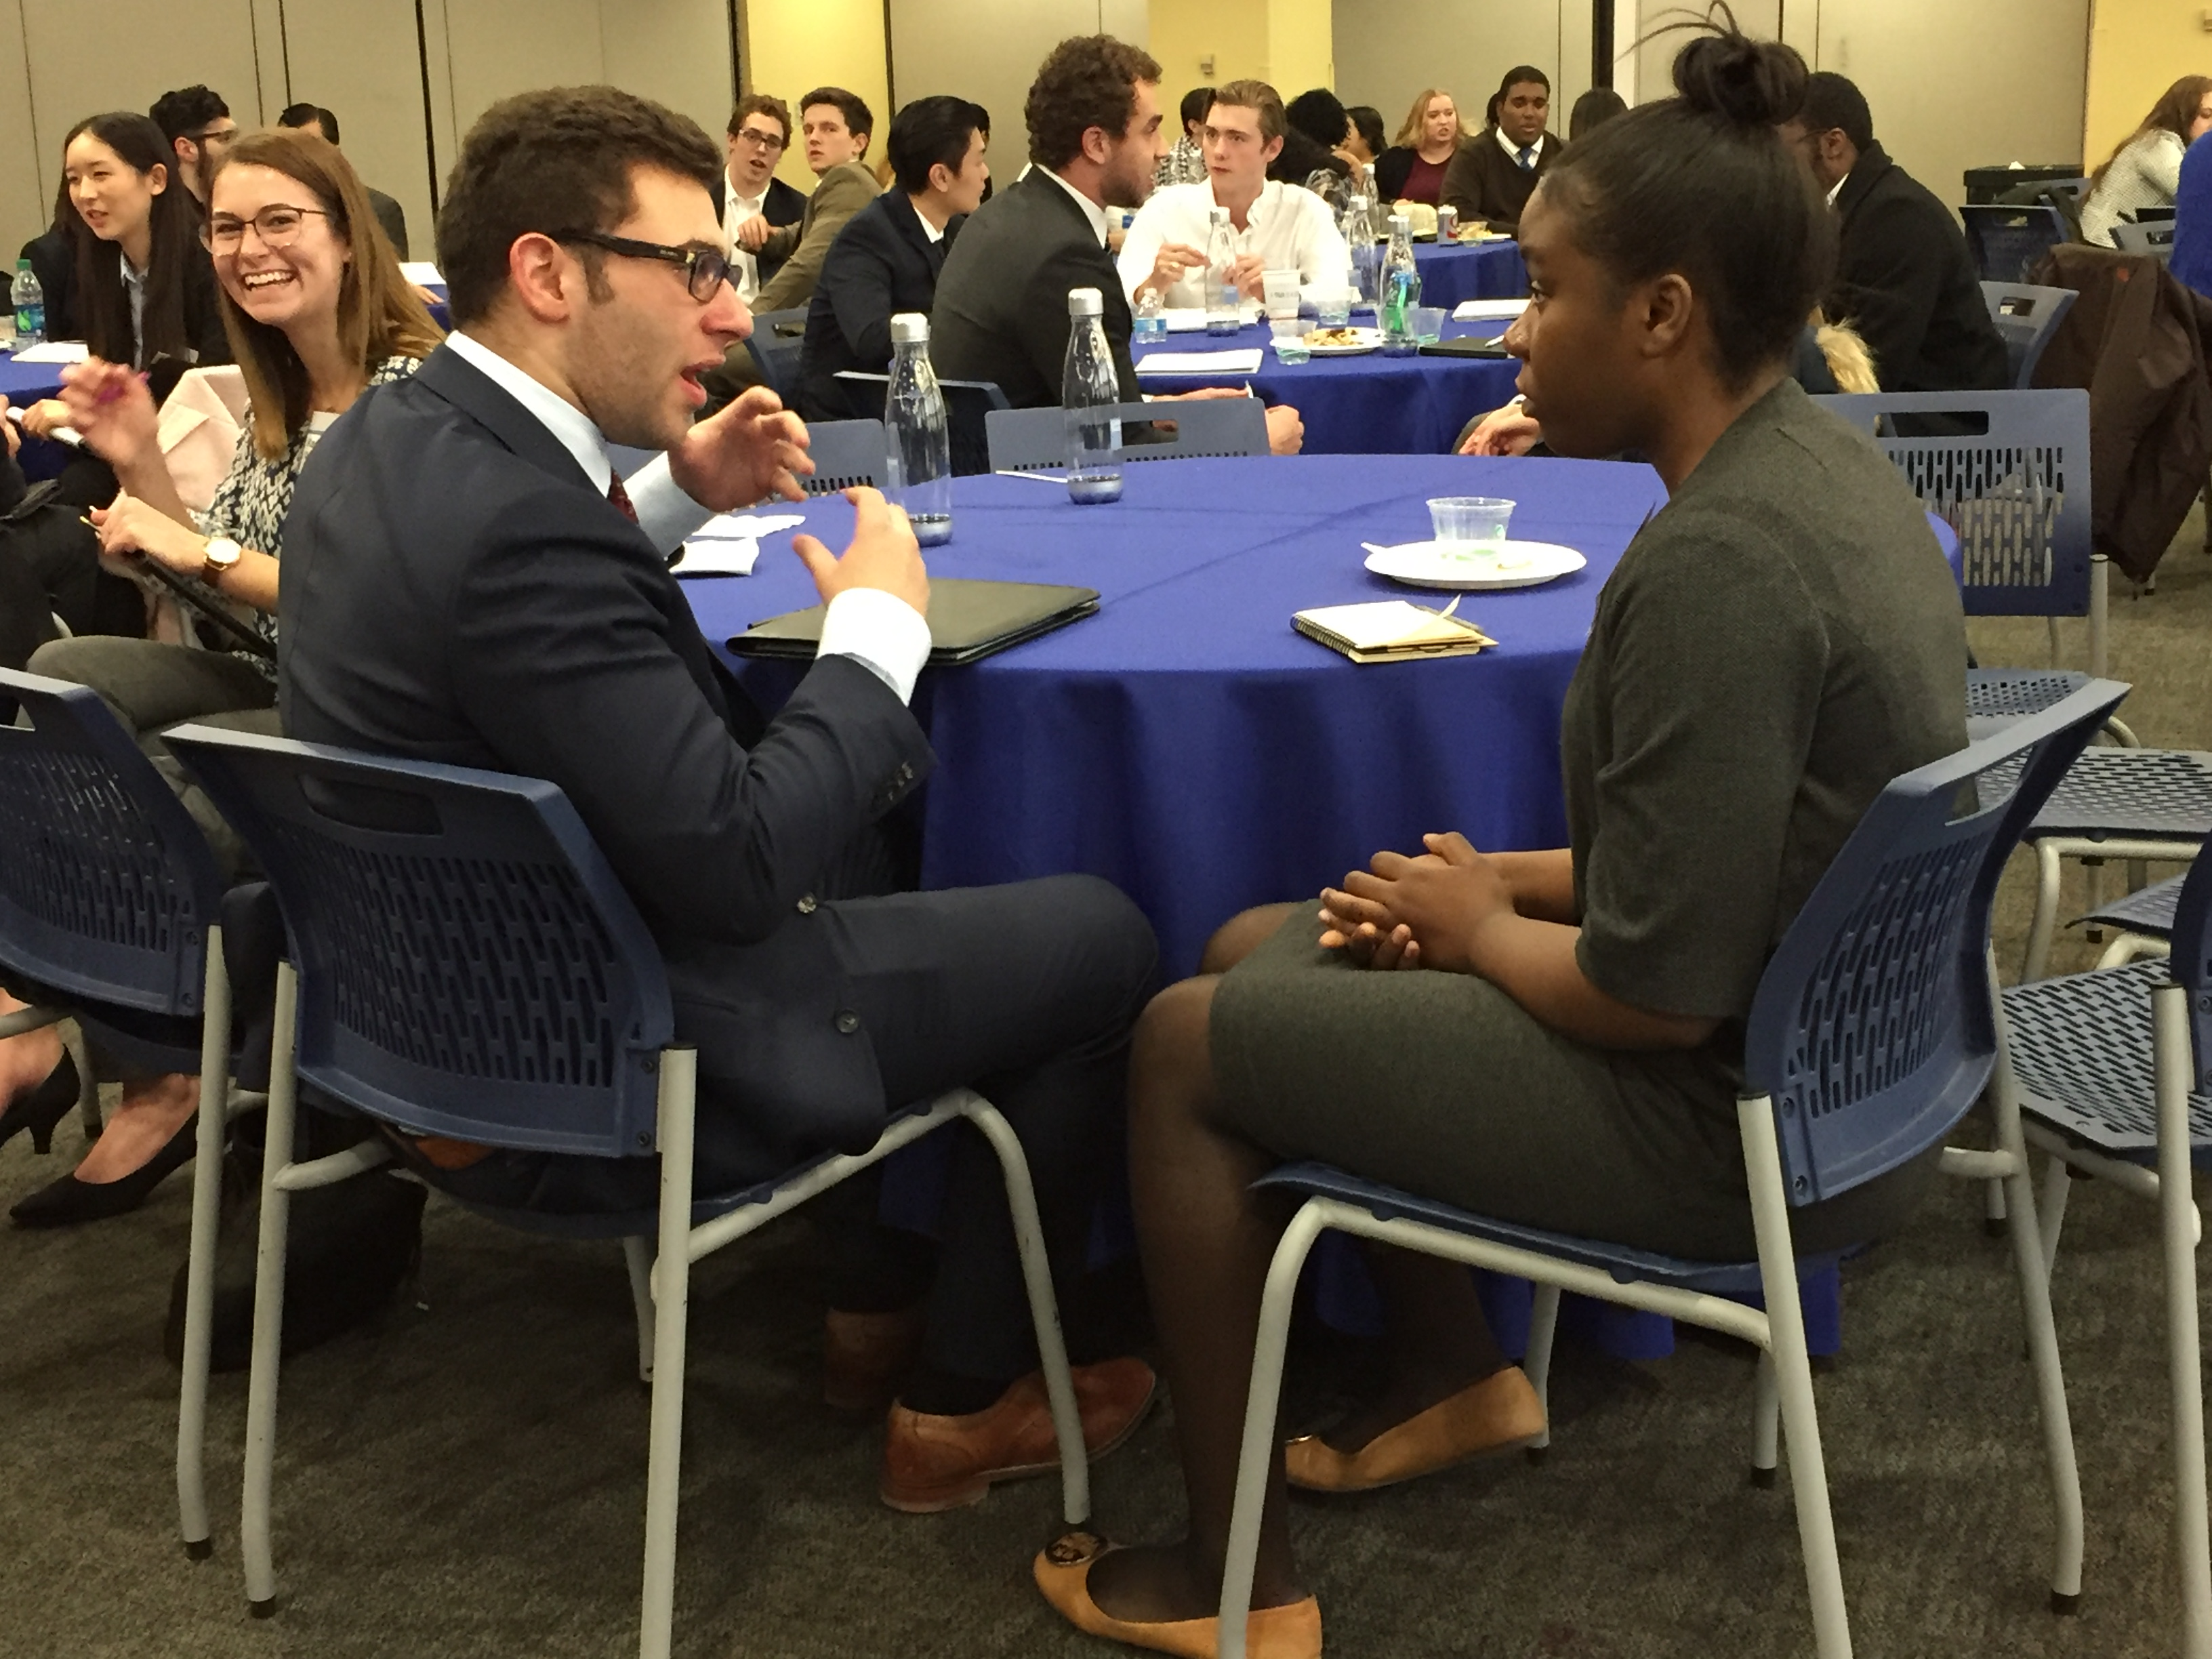 Two students talk at a round table. The male student wears a blue suit and glasses and speaks to the female student wearing a gray cardigan and skirt